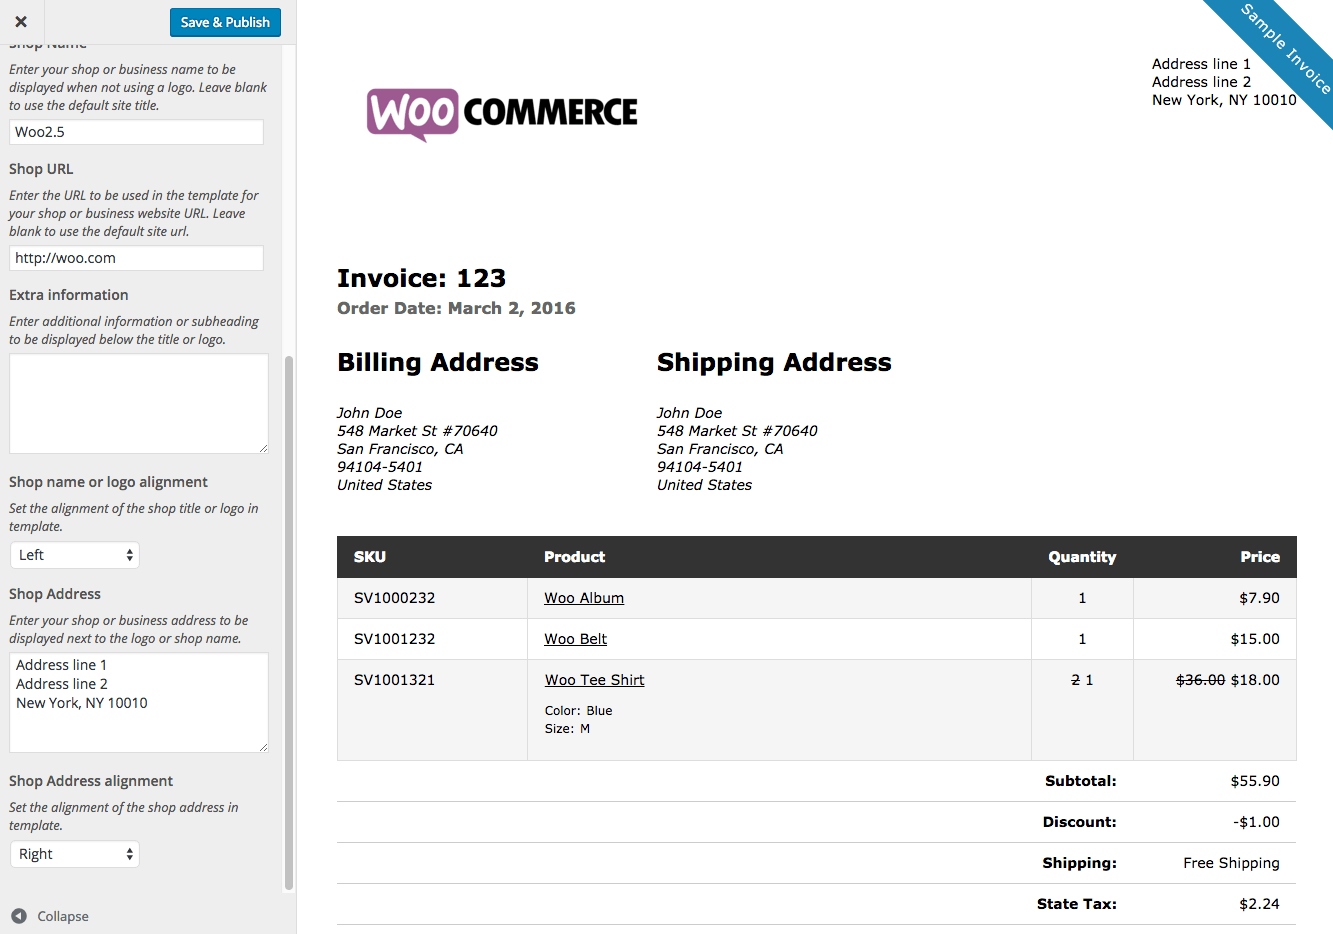 Howcanigettallerus  Nice Woocommerce Print Invoices Amp Packing Lists  Woocommerce Docs With Hot Woocommerce Print Invoices  Packing Lists Customizer With Awesome Print Amazon Receipt Also Turn On Read Receipts Outlook In Addition Receipt Of Purchase Order And Rental Receipt Pdf As Well As Payment Receipt Email Template Additionally Tenant Receipt Template From Docswoocommercecom With Howcanigettallerus  Hot Woocommerce Print Invoices Amp Packing Lists  Woocommerce Docs With Awesome Woocommerce Print Invoices  Packing Lists Customizer And Nice Print Amazon Receipt Also Turn On Read Receipts Outlook In Addition Receipt Of Purchase Order From Docswoocommercecom